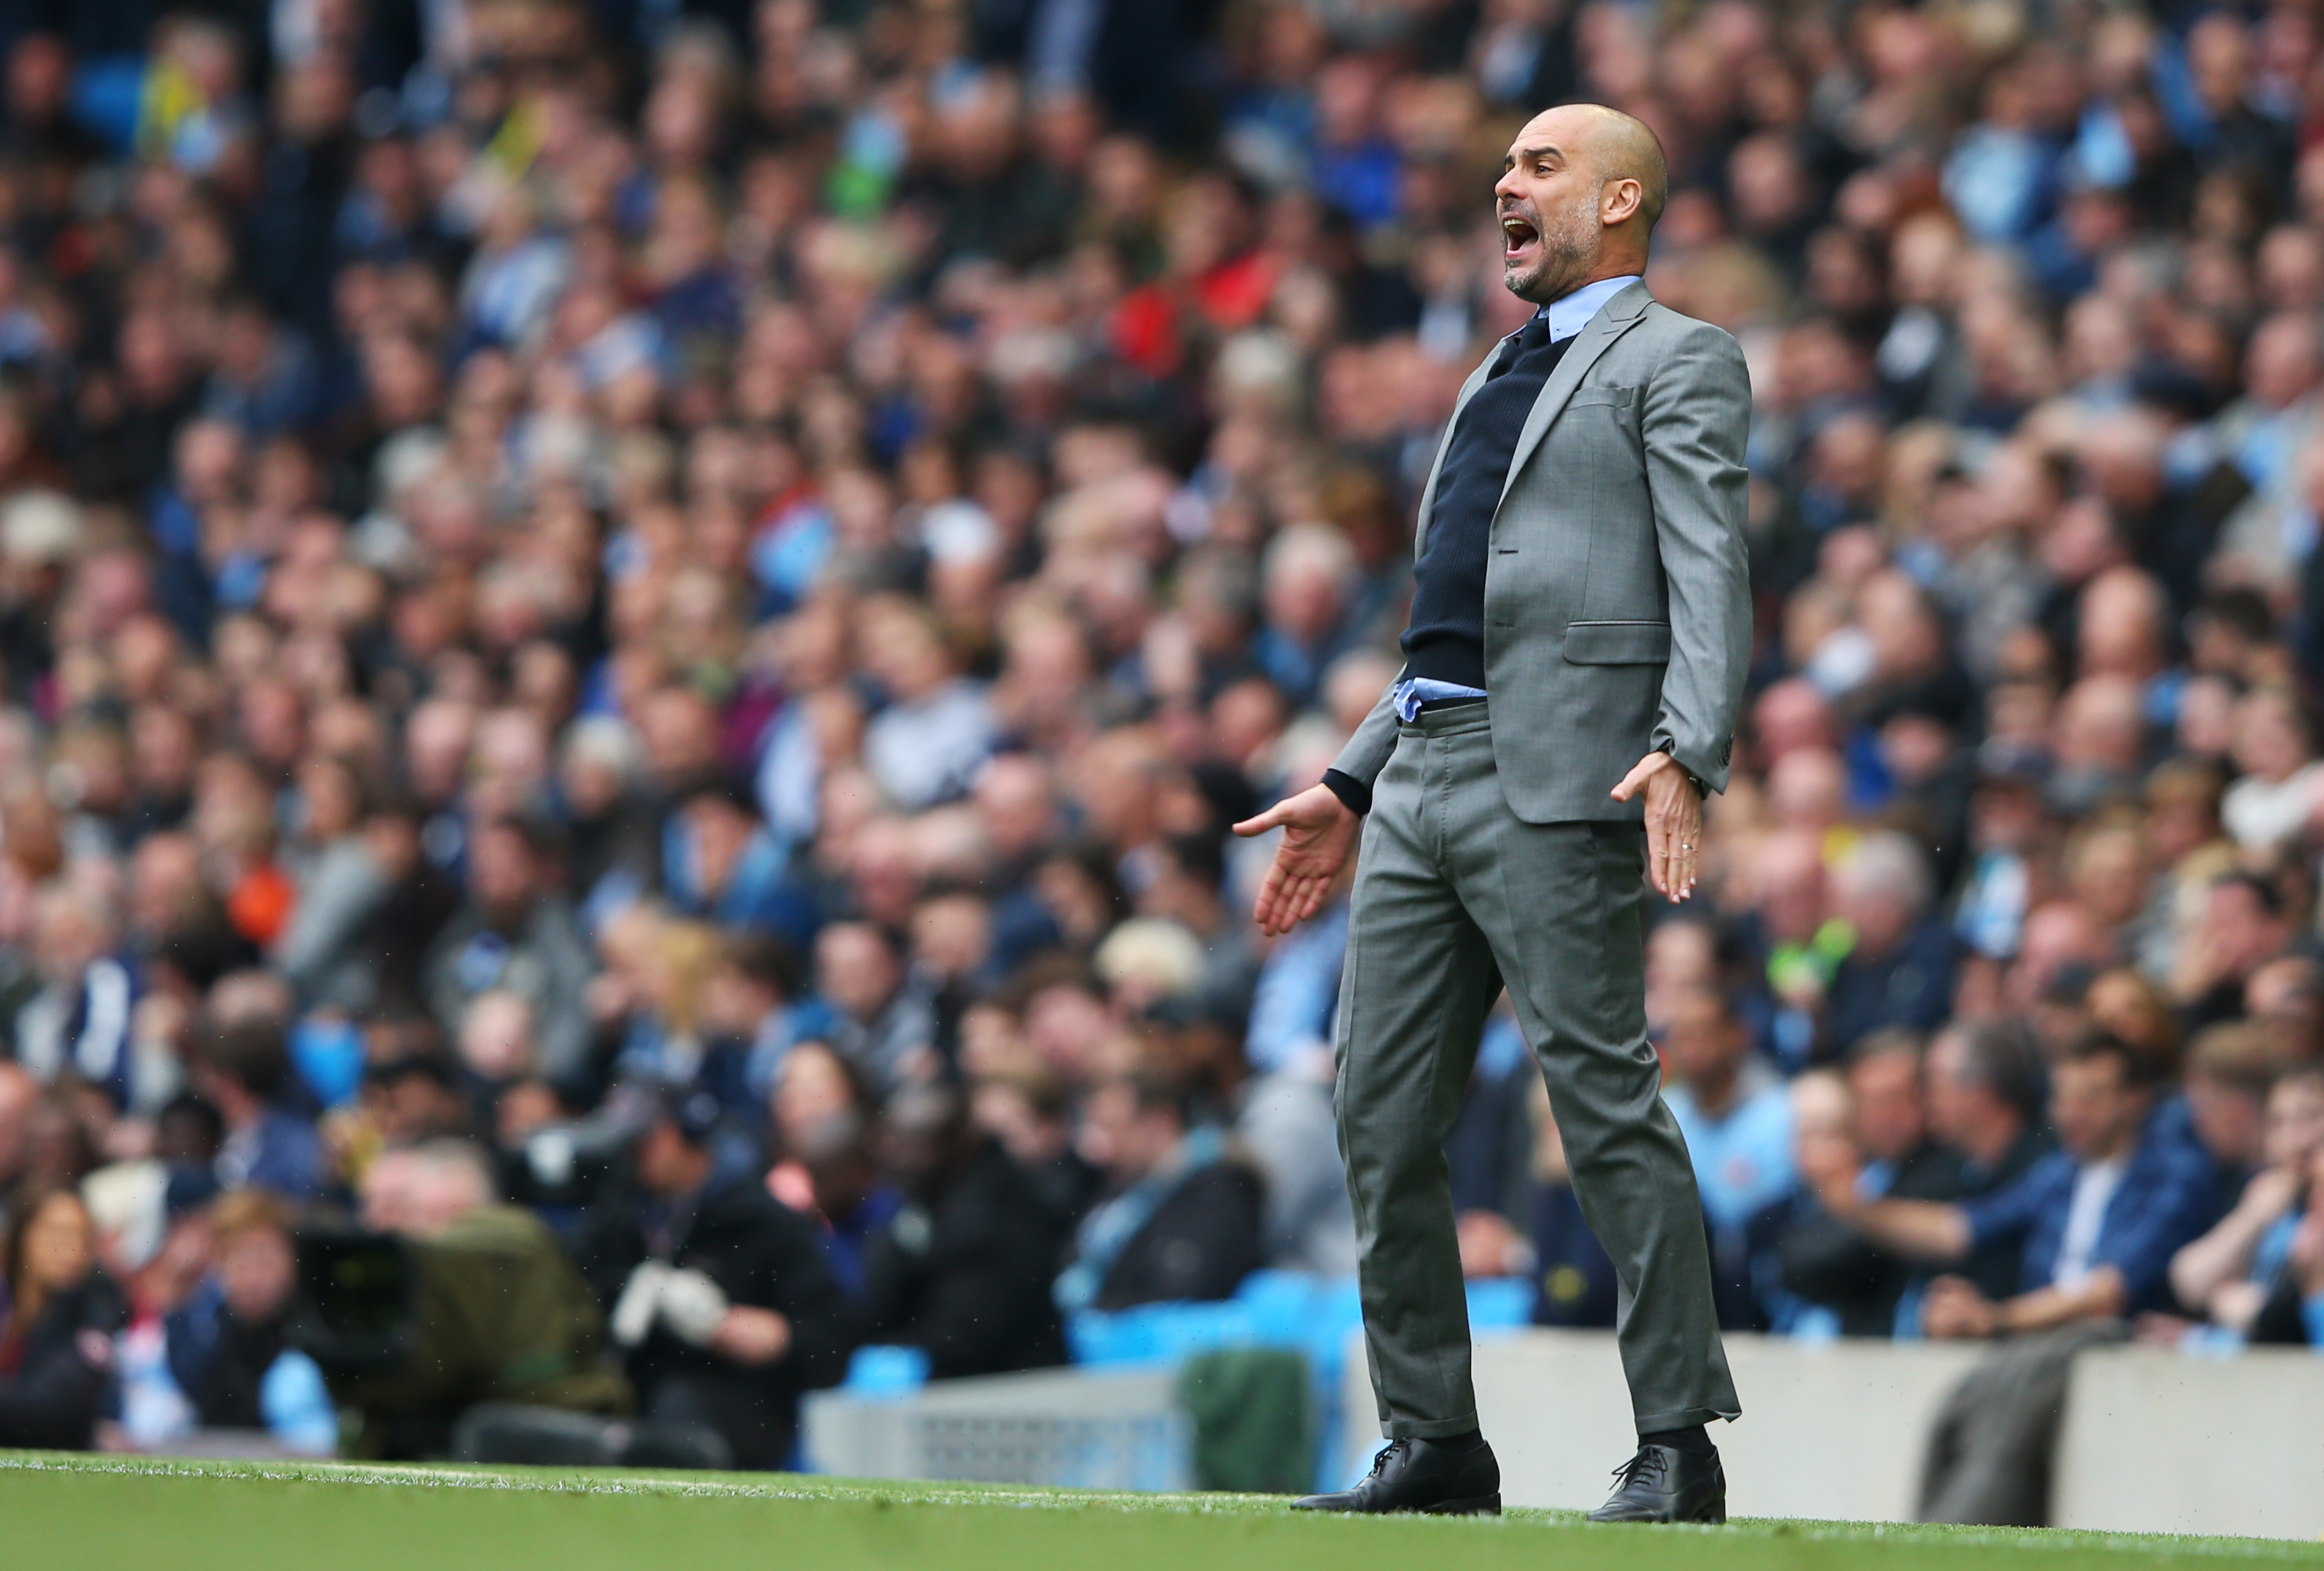 Pep Guardiola praises referee for